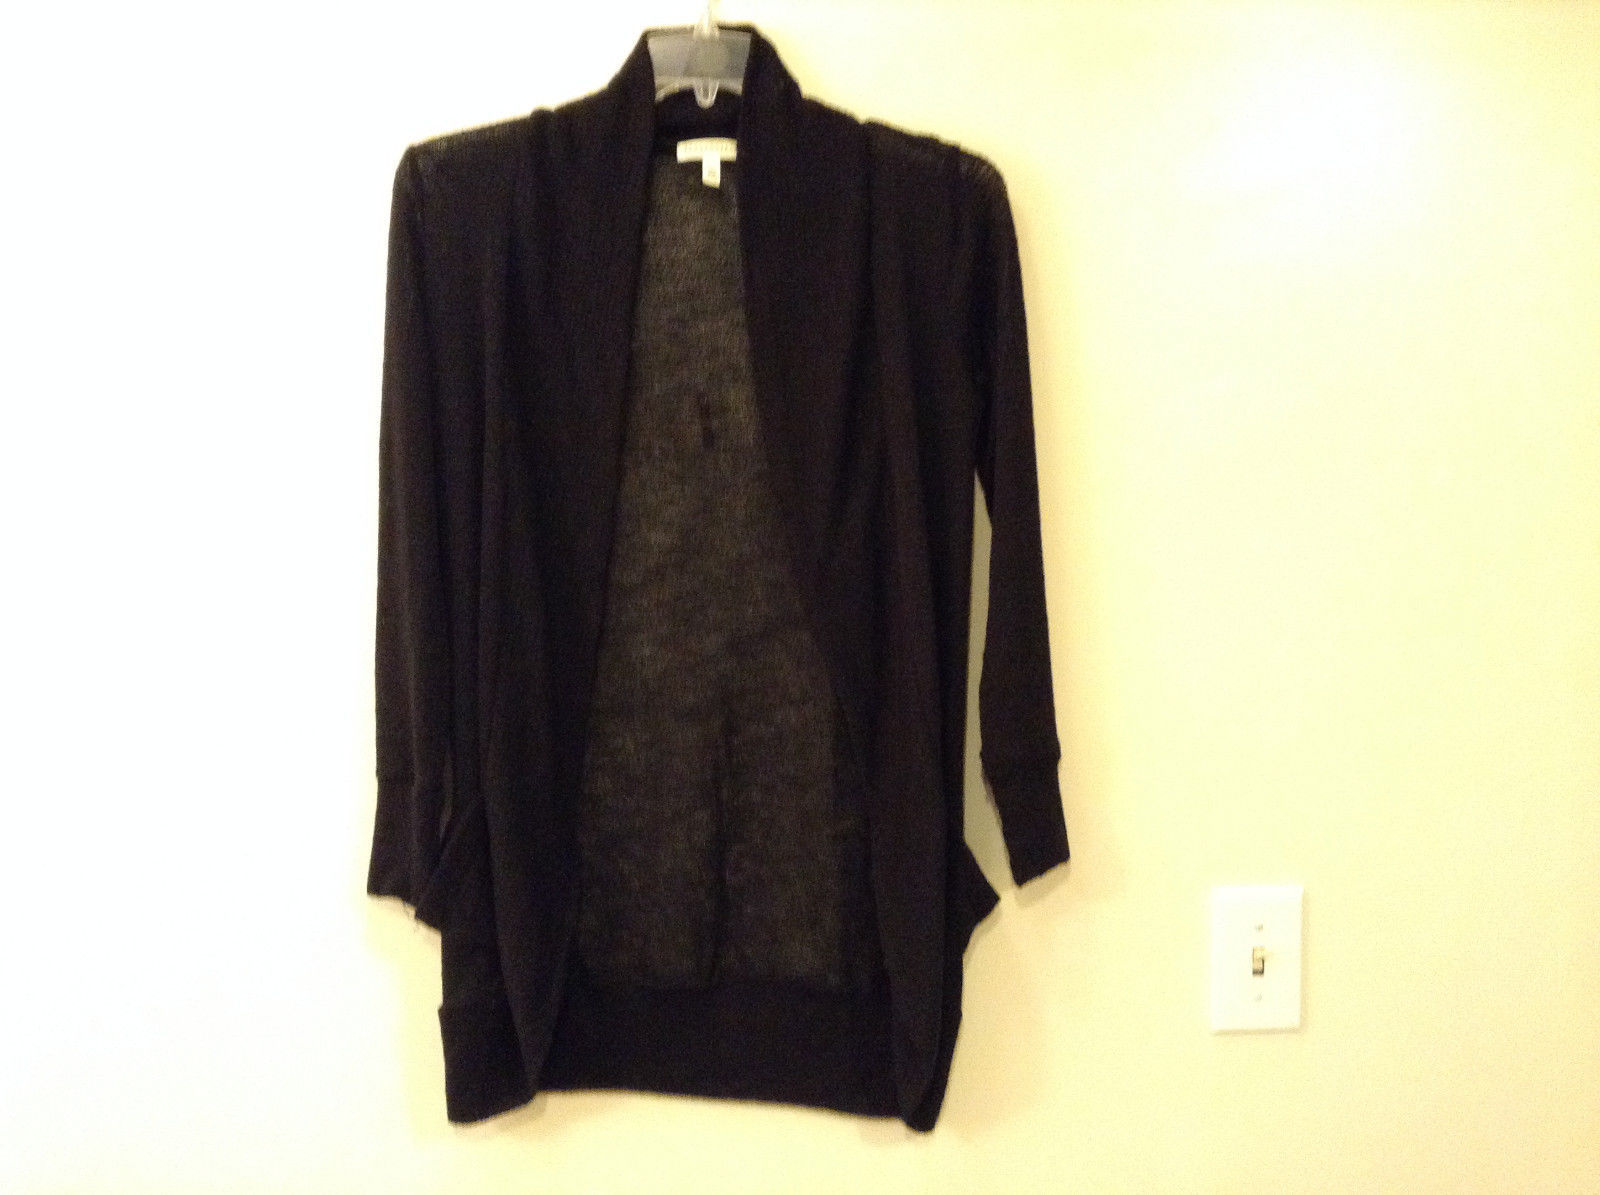 Aeropostale Women's Size S Layering Cardigan Sweater Long-Line Black Open Front